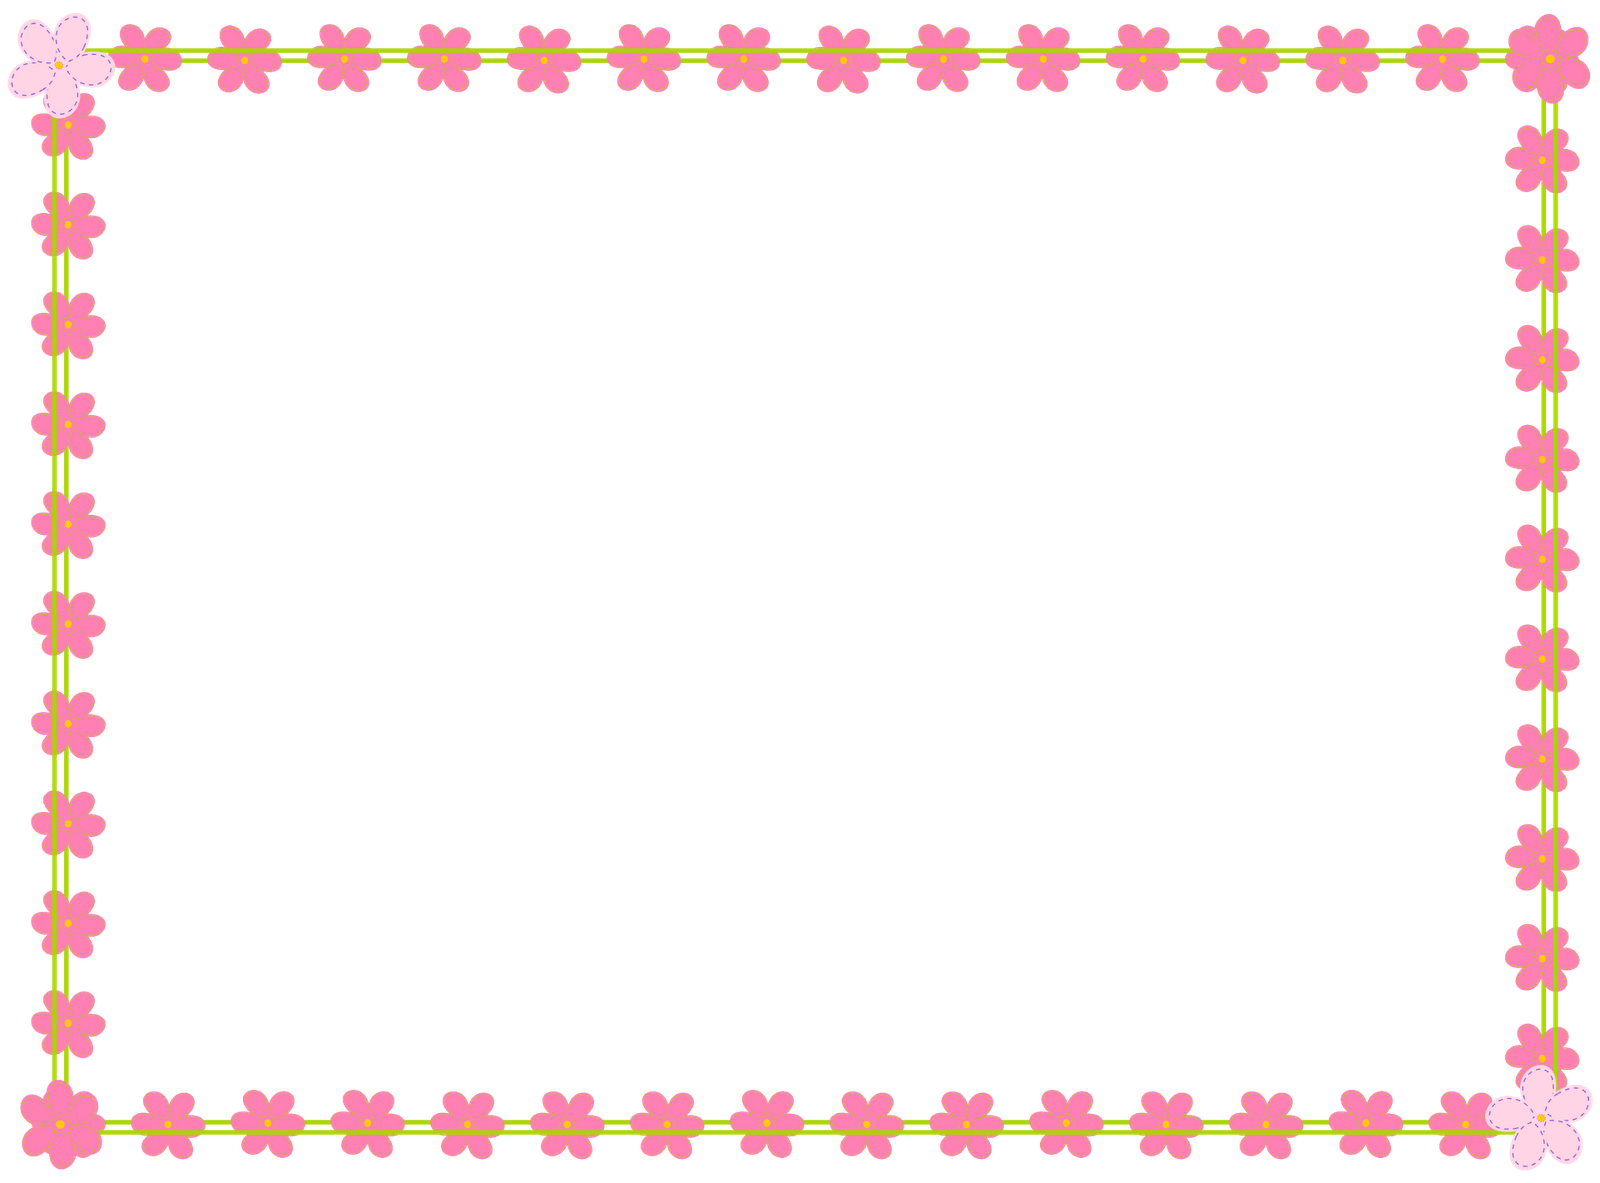 Pink Flower Border Clip Art Clipart Panda Free Clipart Images